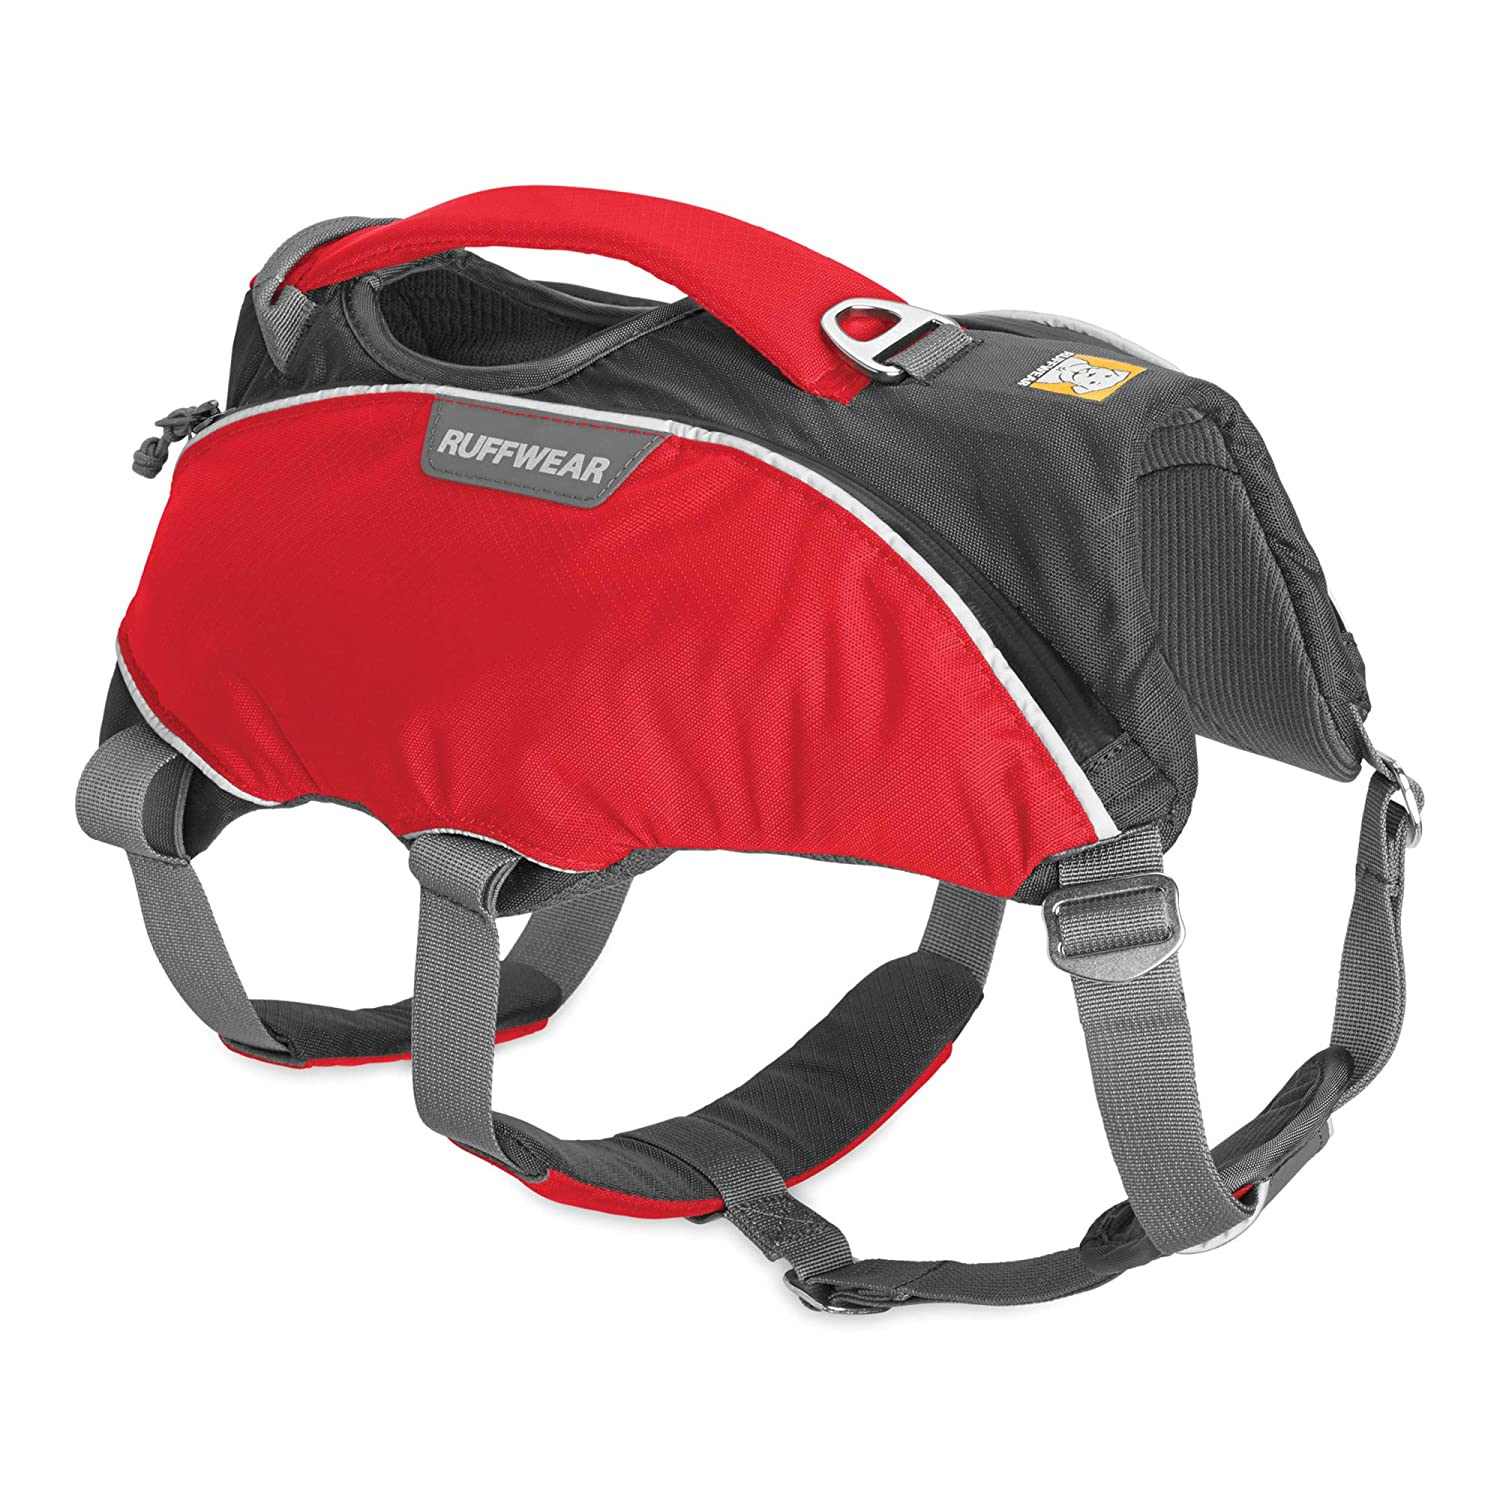 RUFFWEAR - Web Master Pro Dog Harness